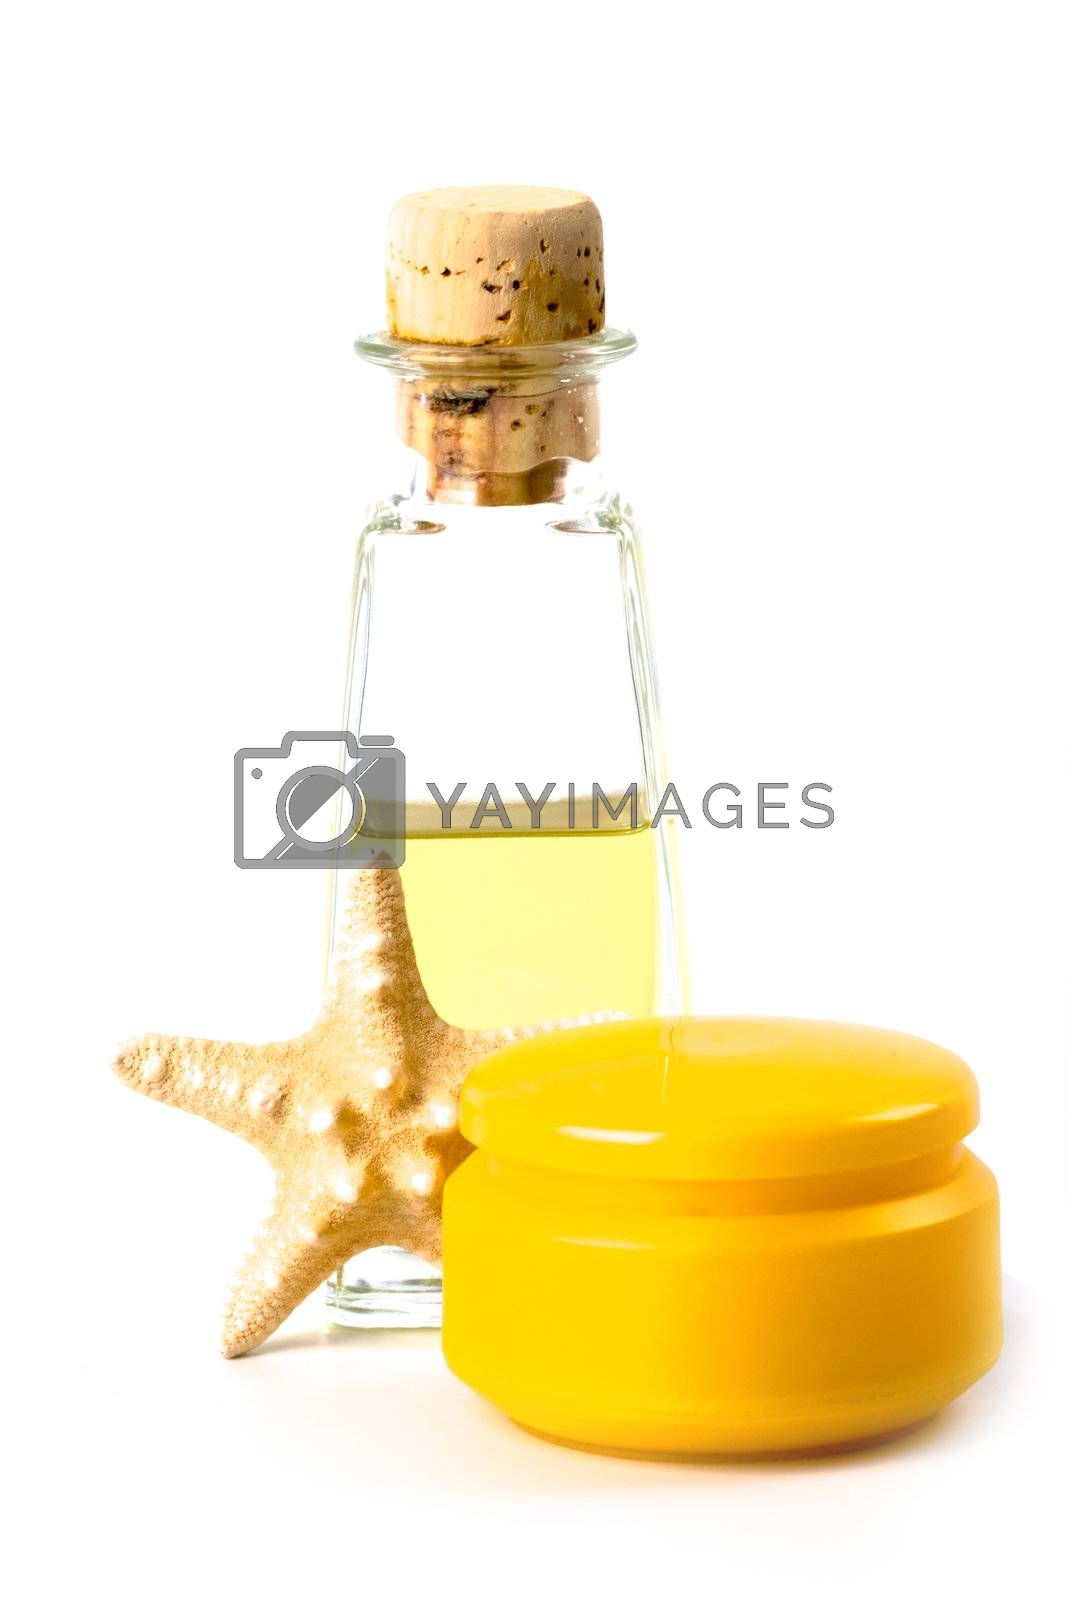 spa products: sea salt, facial creme, oil and star isolated on white background